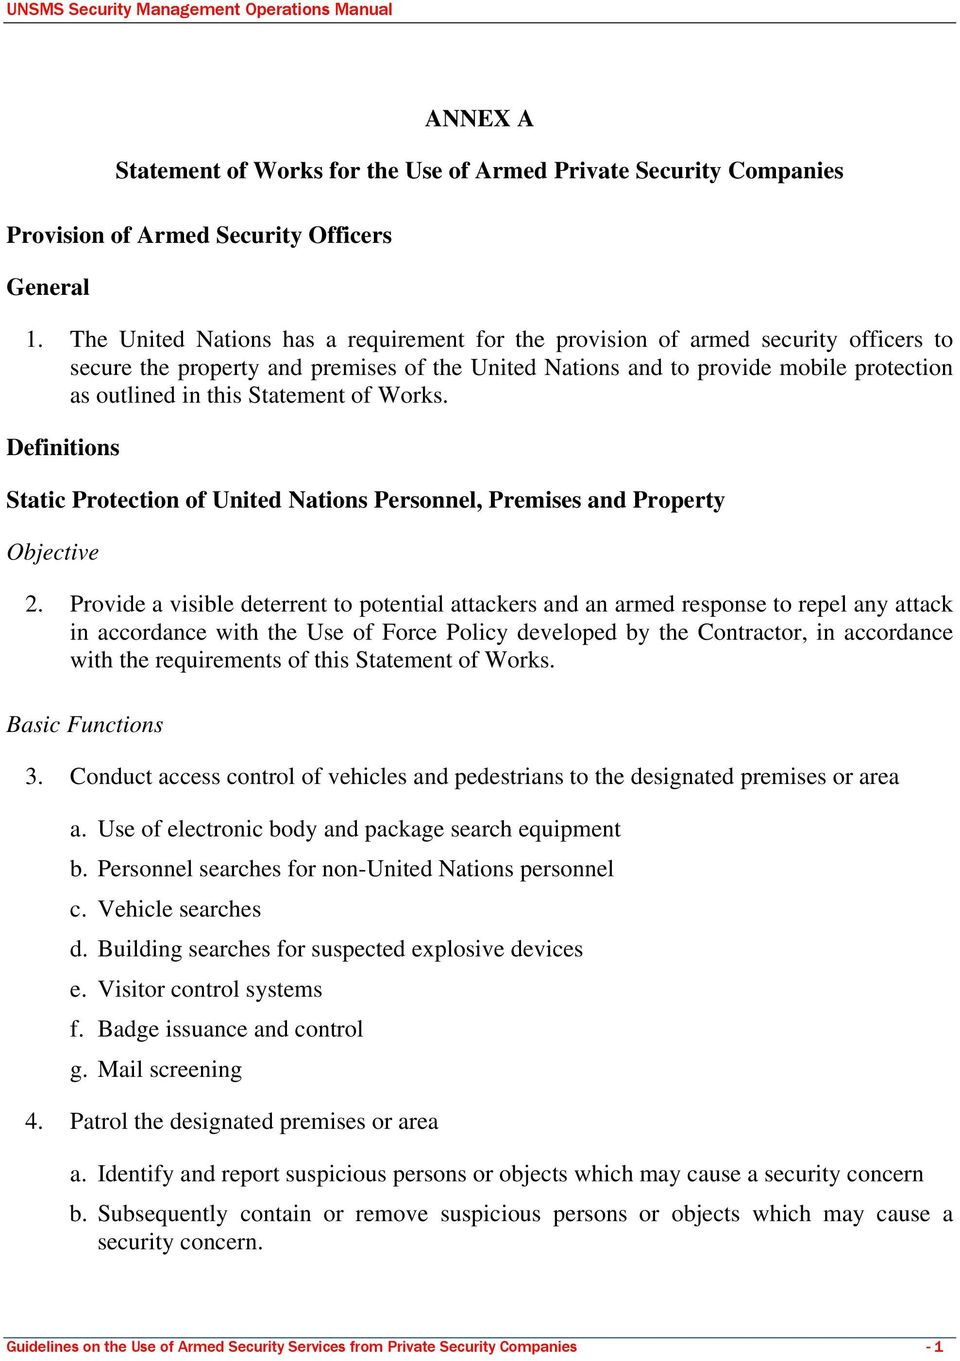 Statement of Works. Definitions Static Protection of United Nations Personnel, Premises and Property Objective 2.